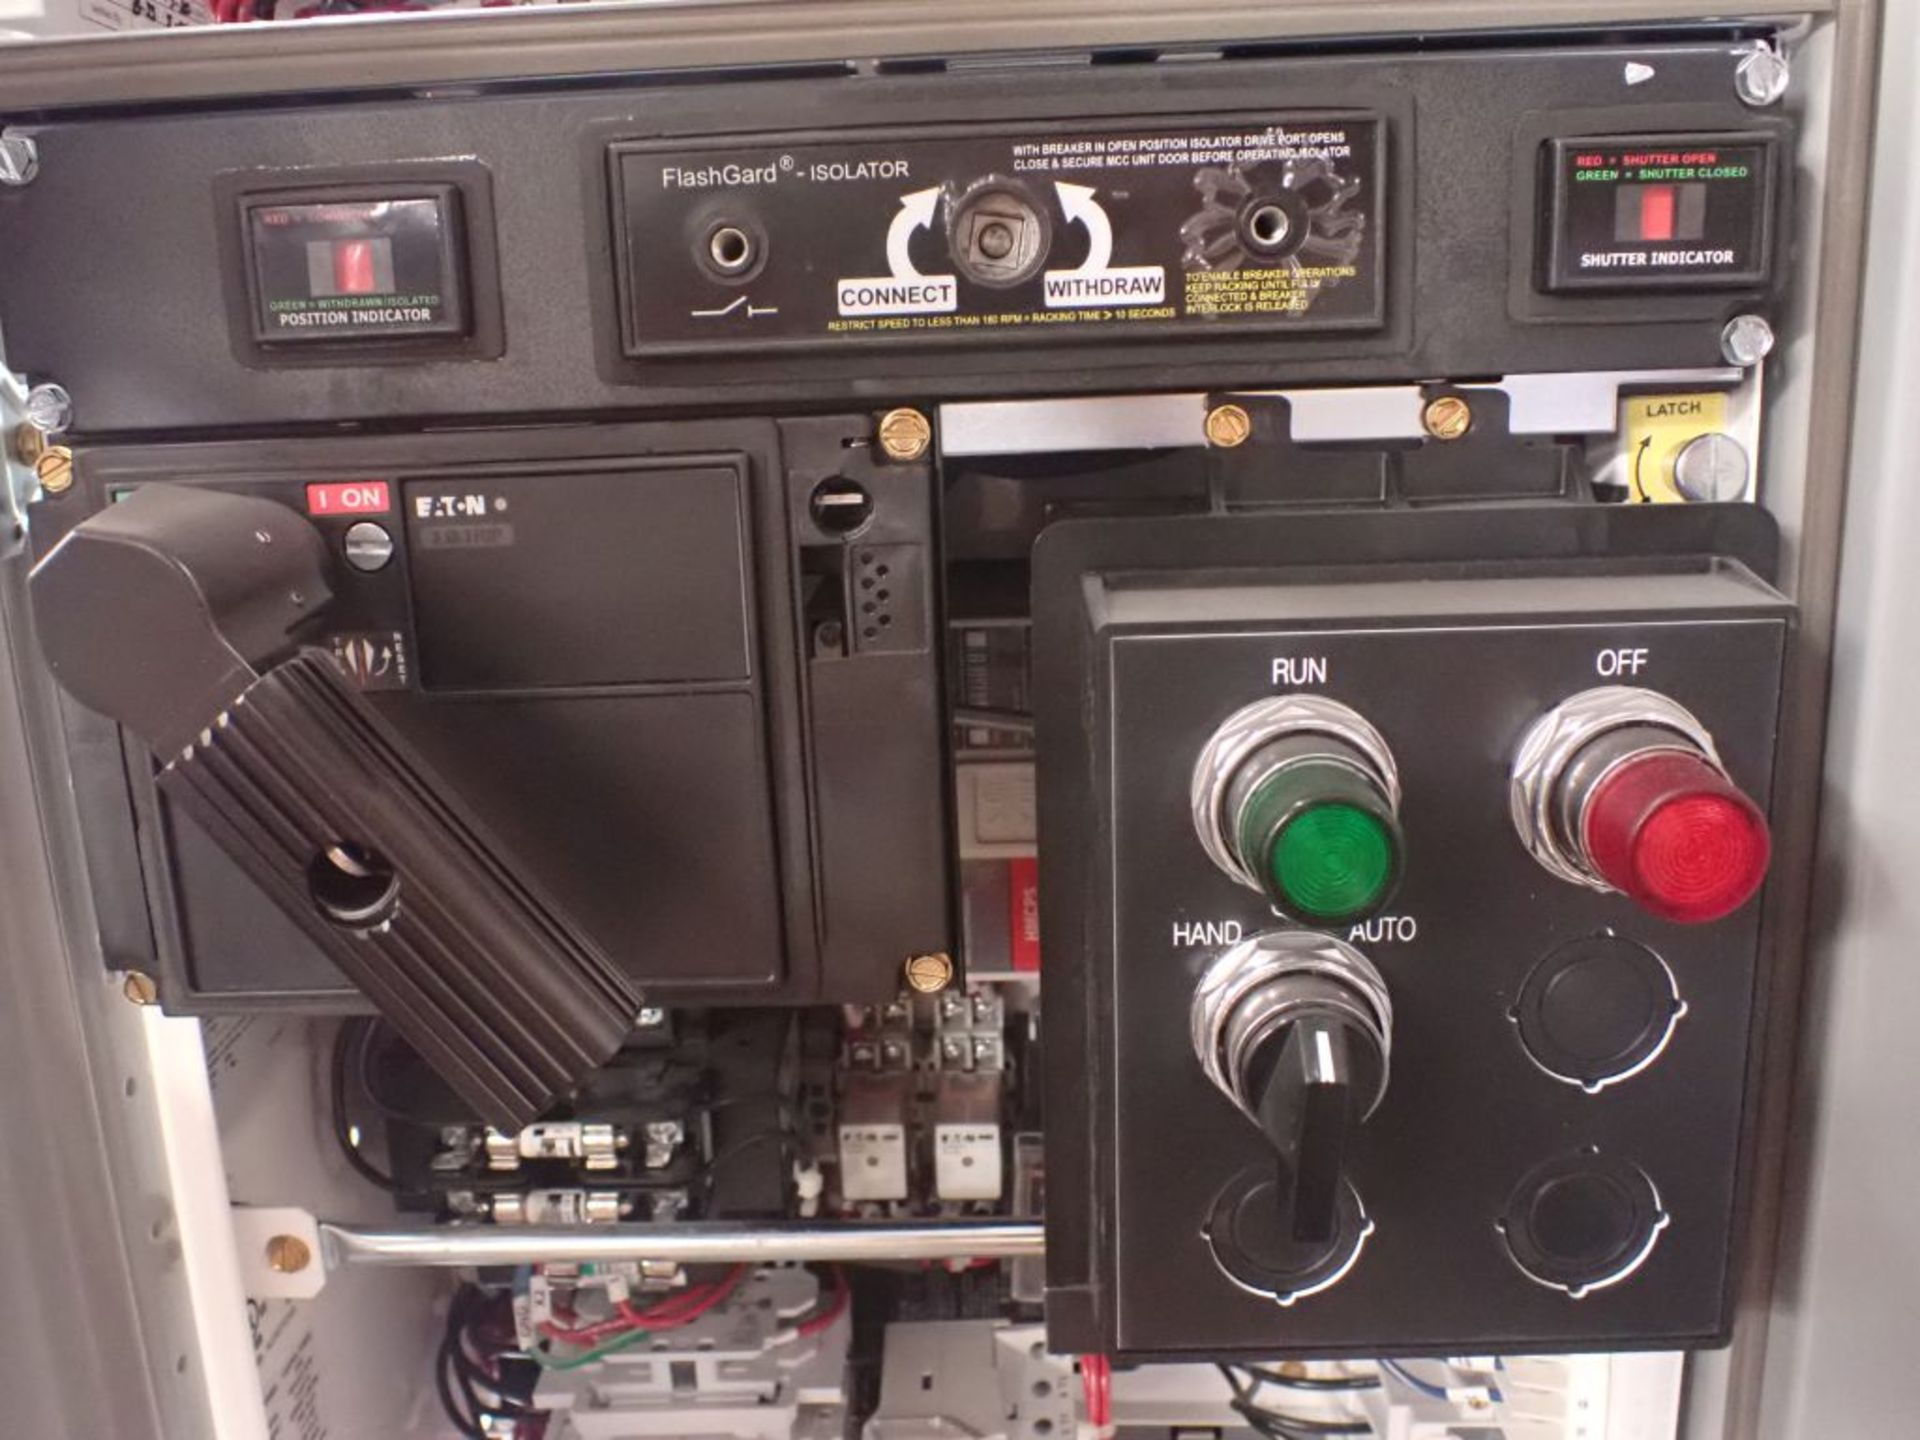 Eaton Freedom 2100 Series Motor Control Center   (2) F206-15A-10HP; (1) F206-30A-10HP; (1) FDRB- - Image 27 of 61